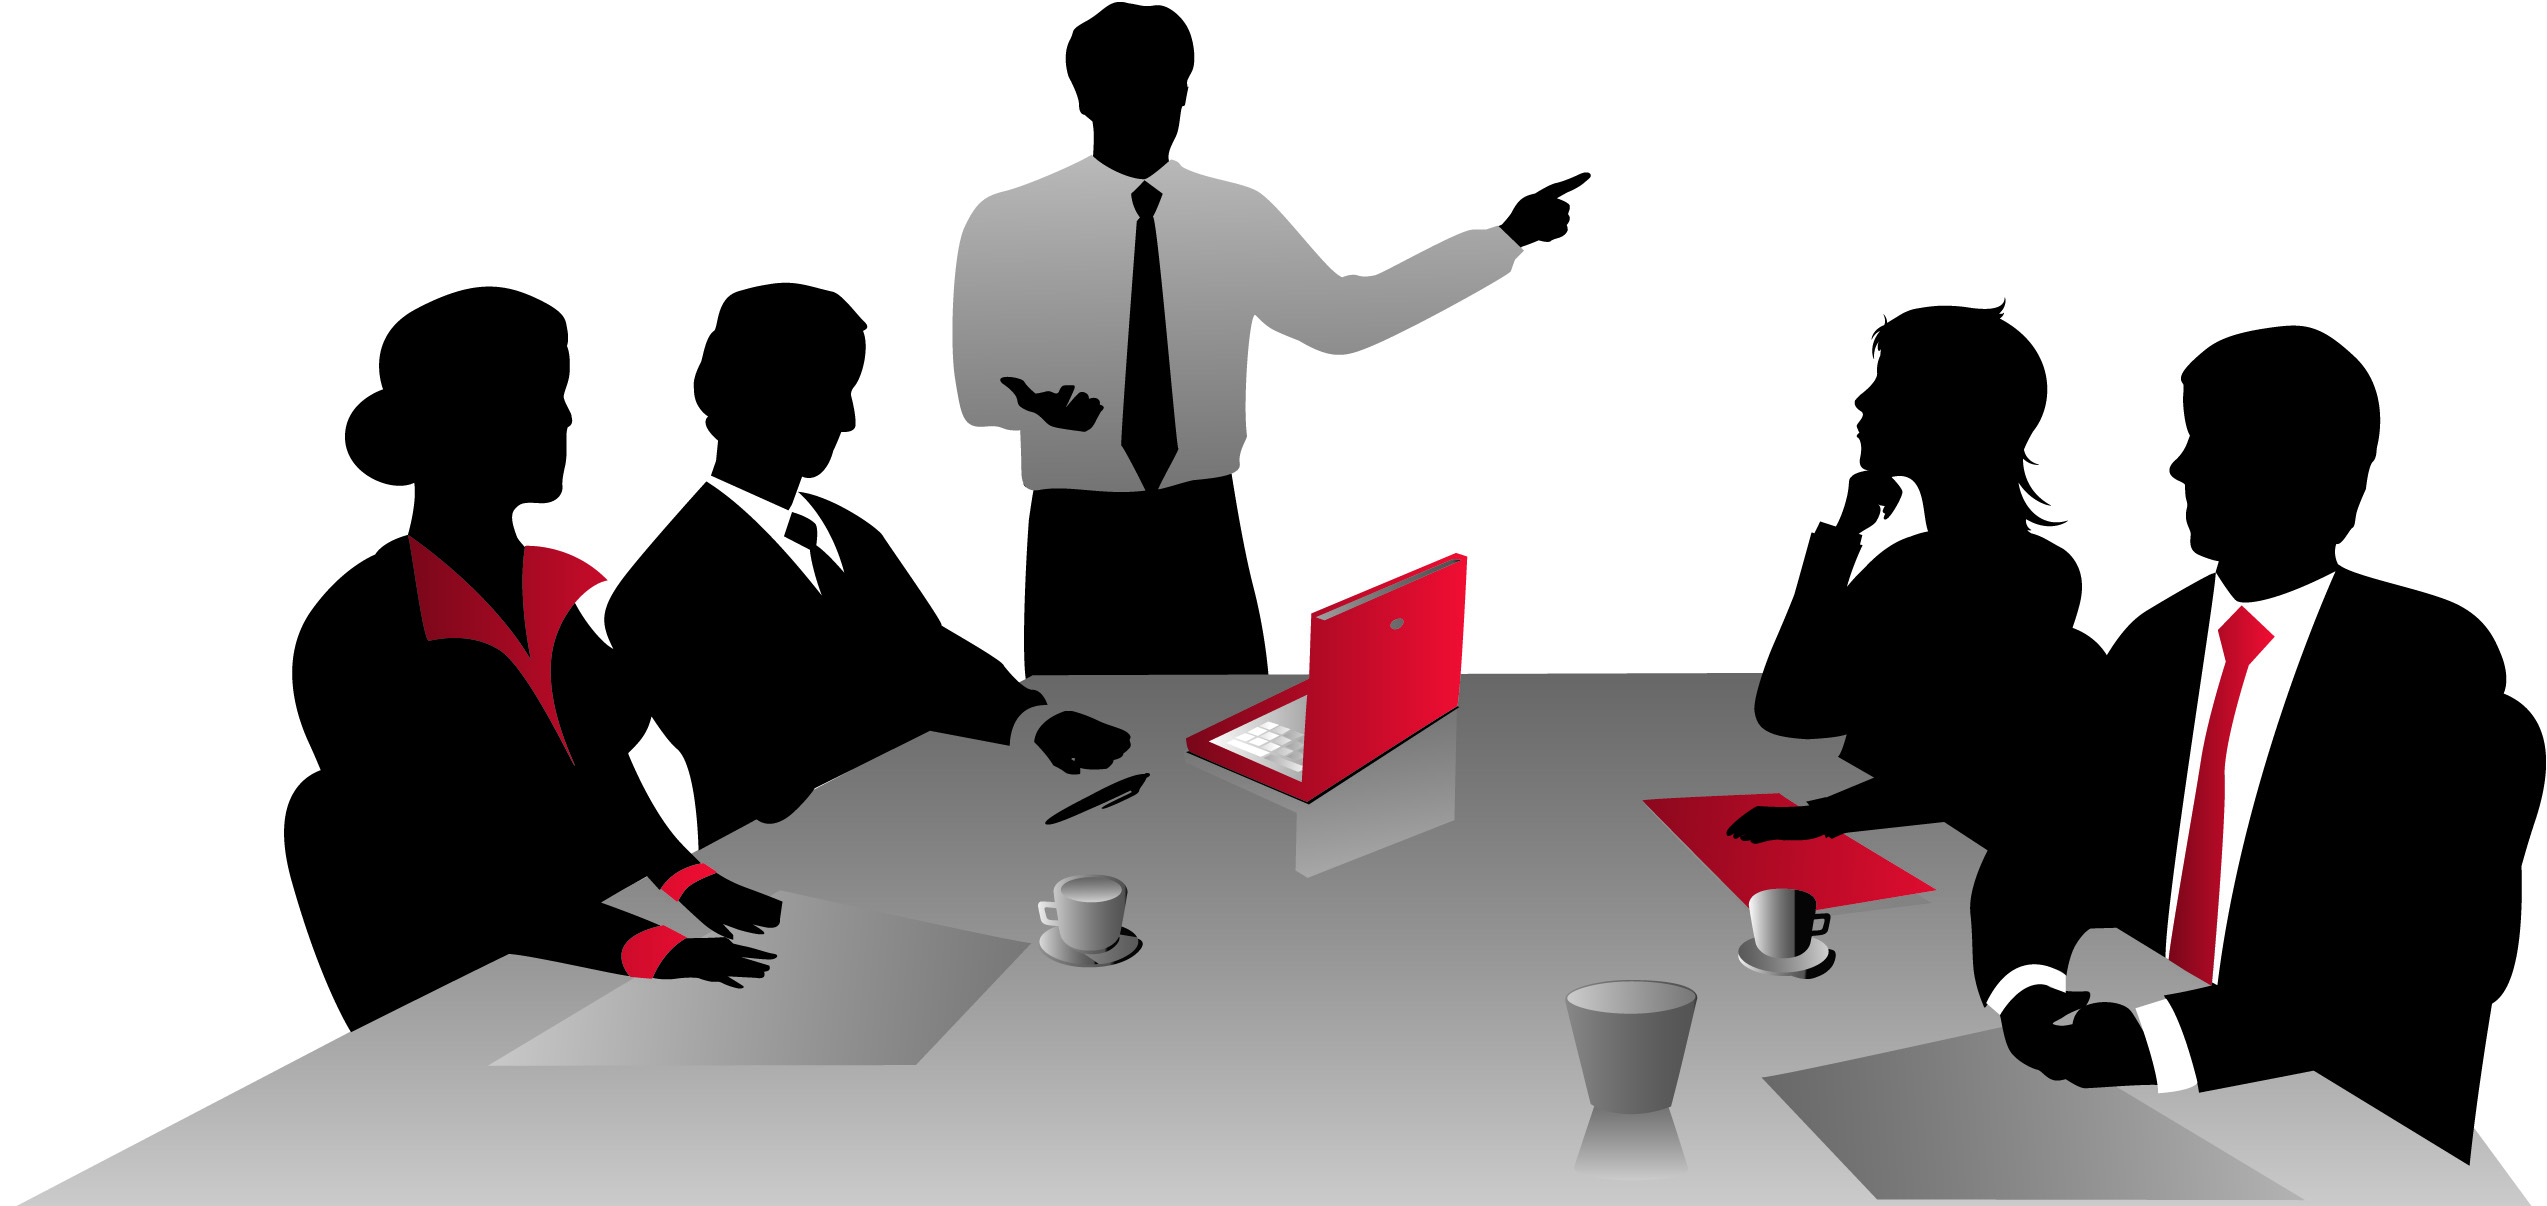 Presentation skills in any negotiation environment is a vital business aspect